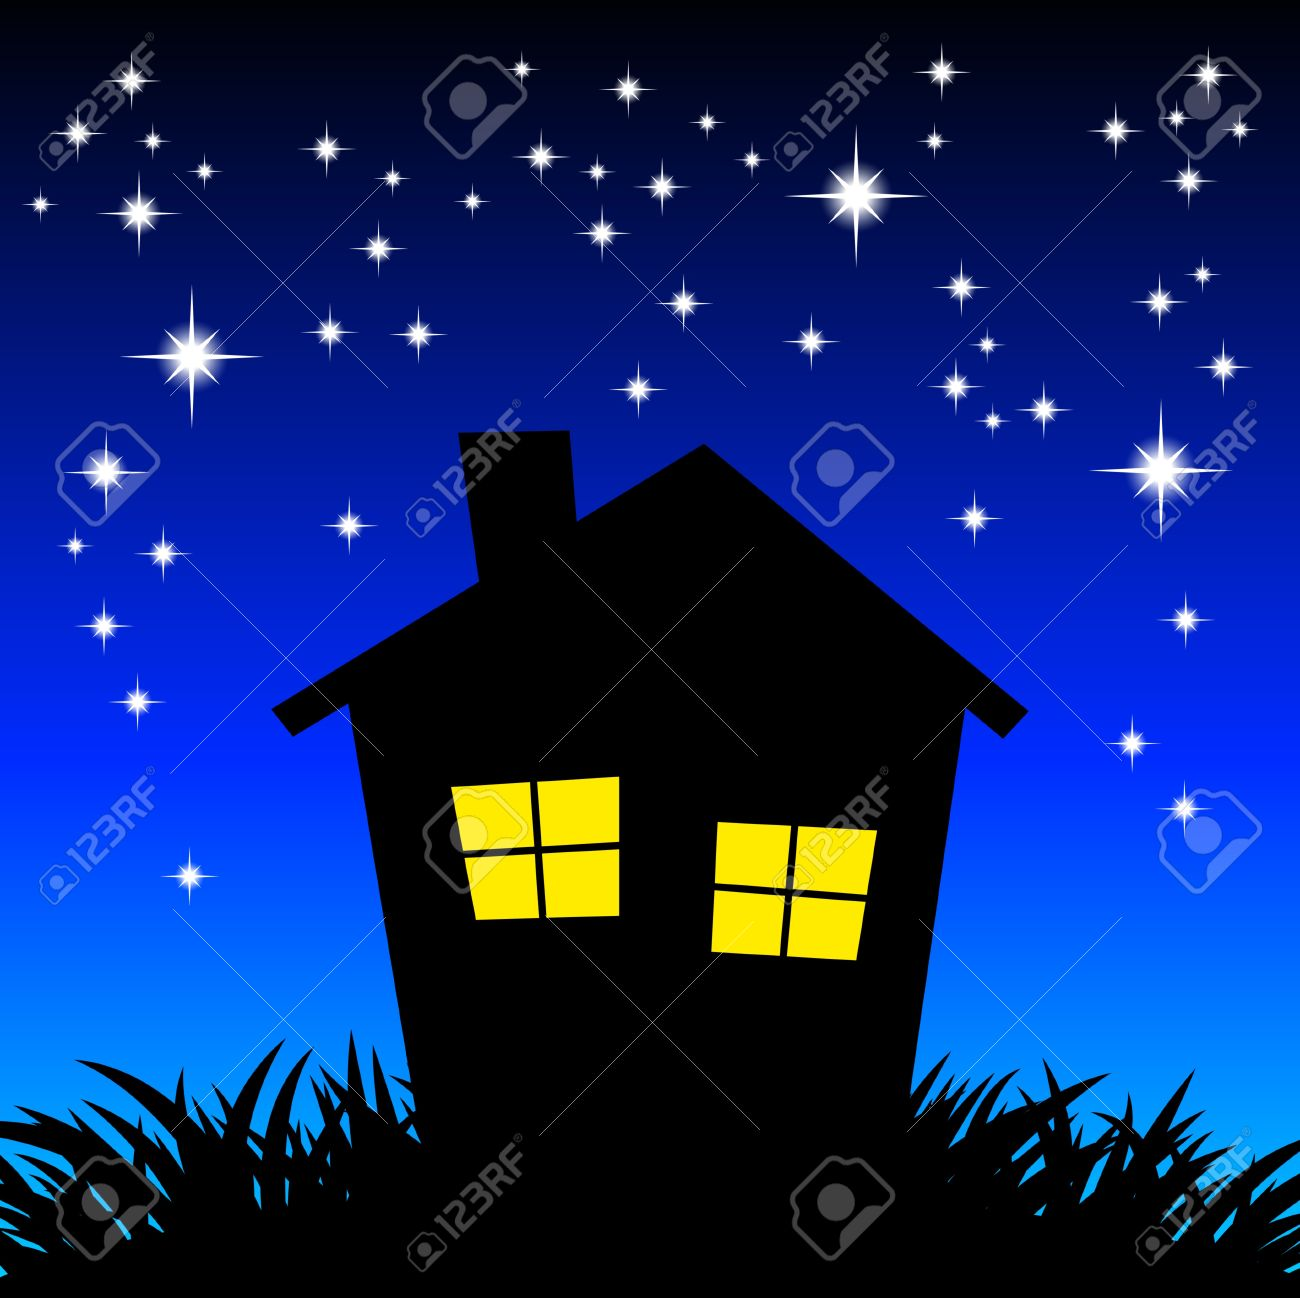 At night clipart.